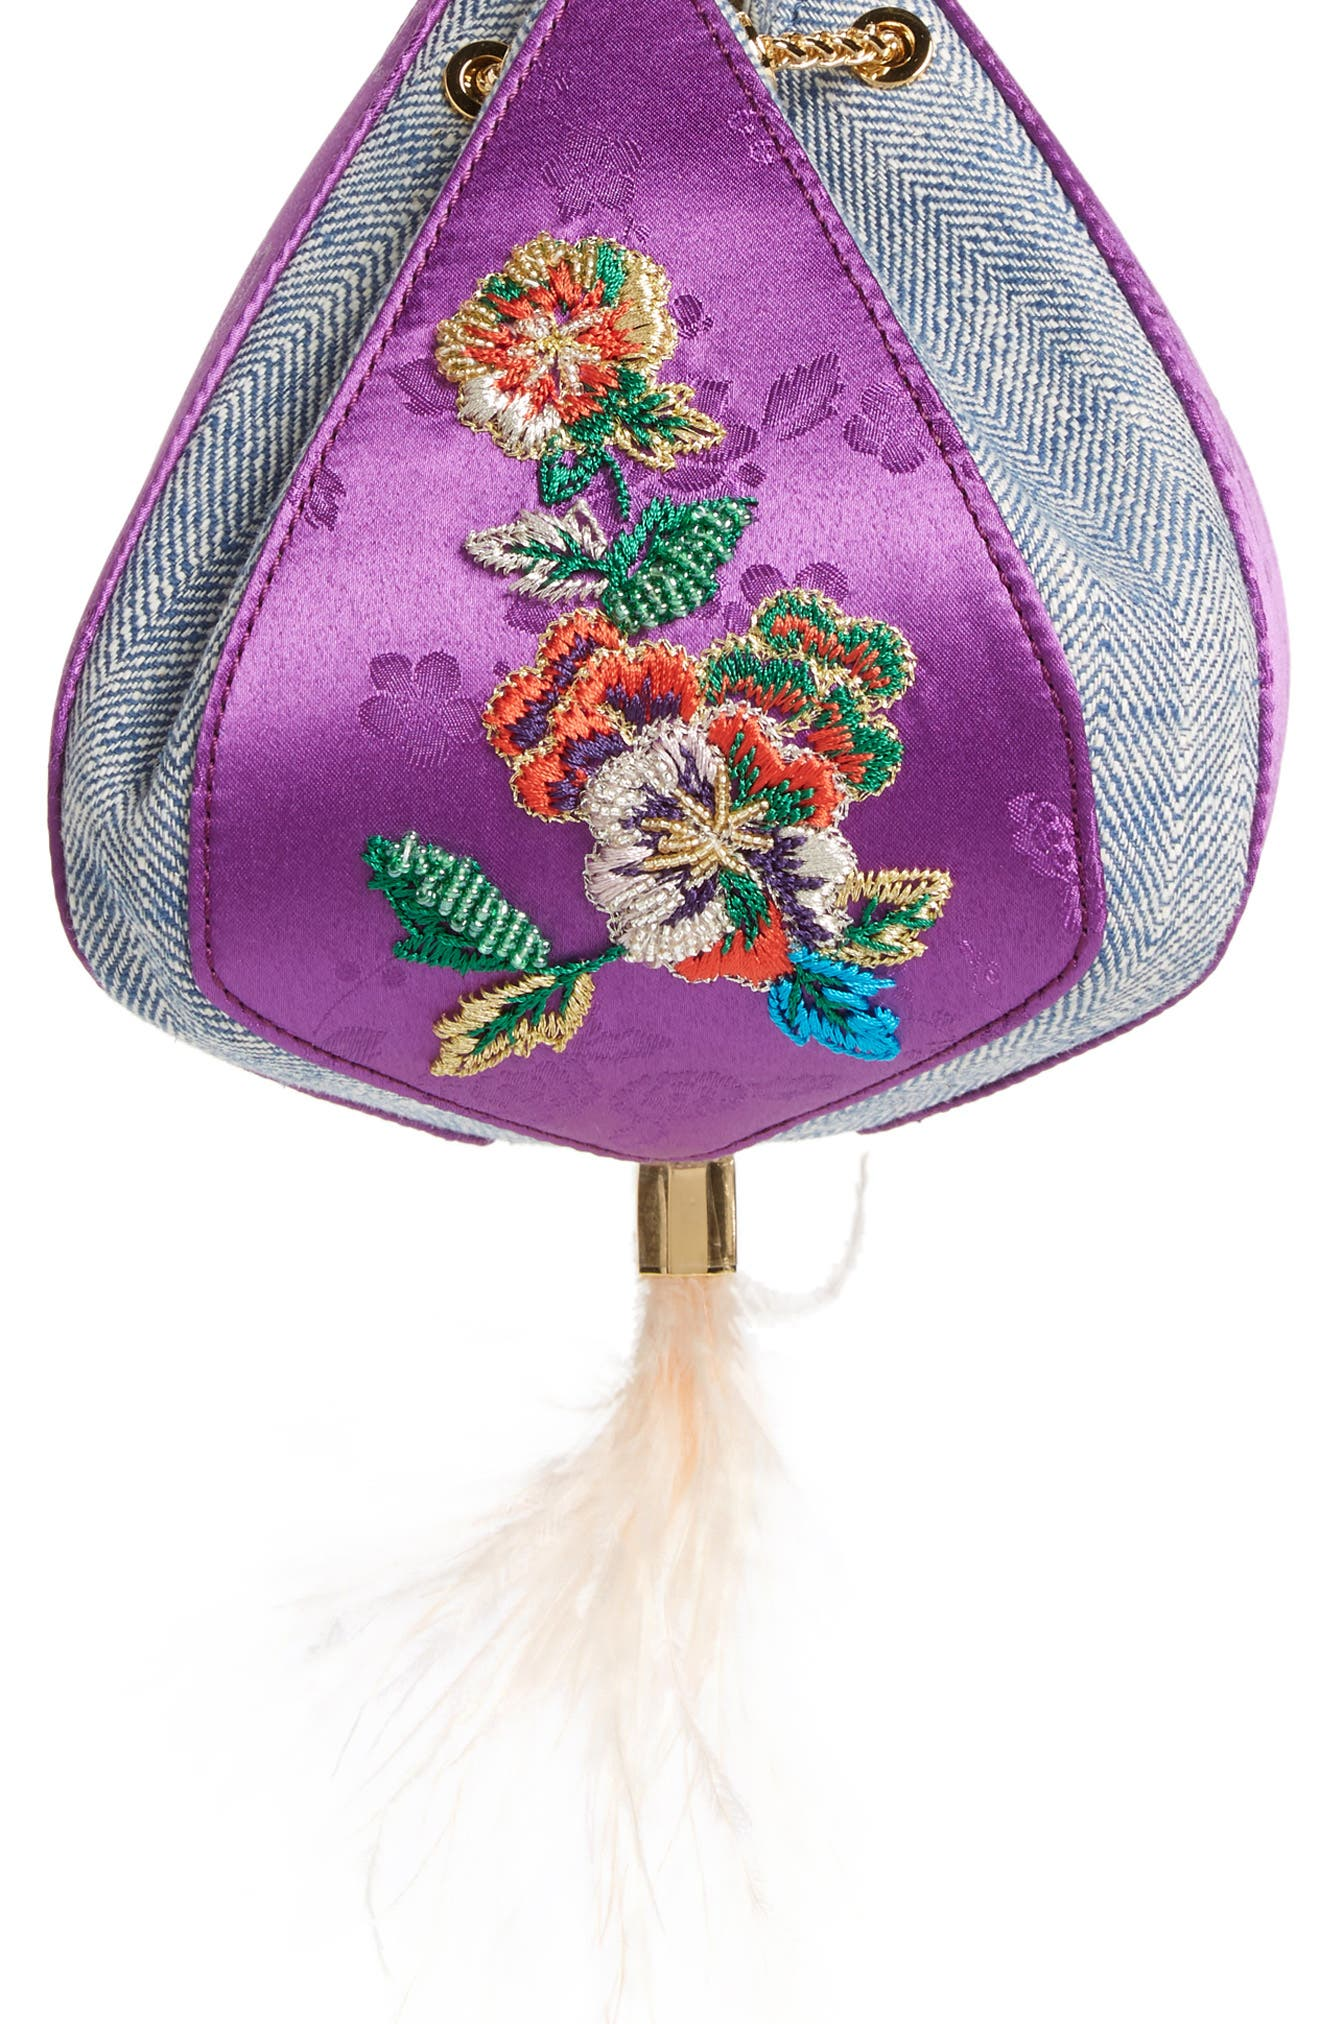 THE VOLON, Cindy Flower Embroidered Brocade & Denim Clutch, Main thumbnail 1, color, CHECK PURPLE